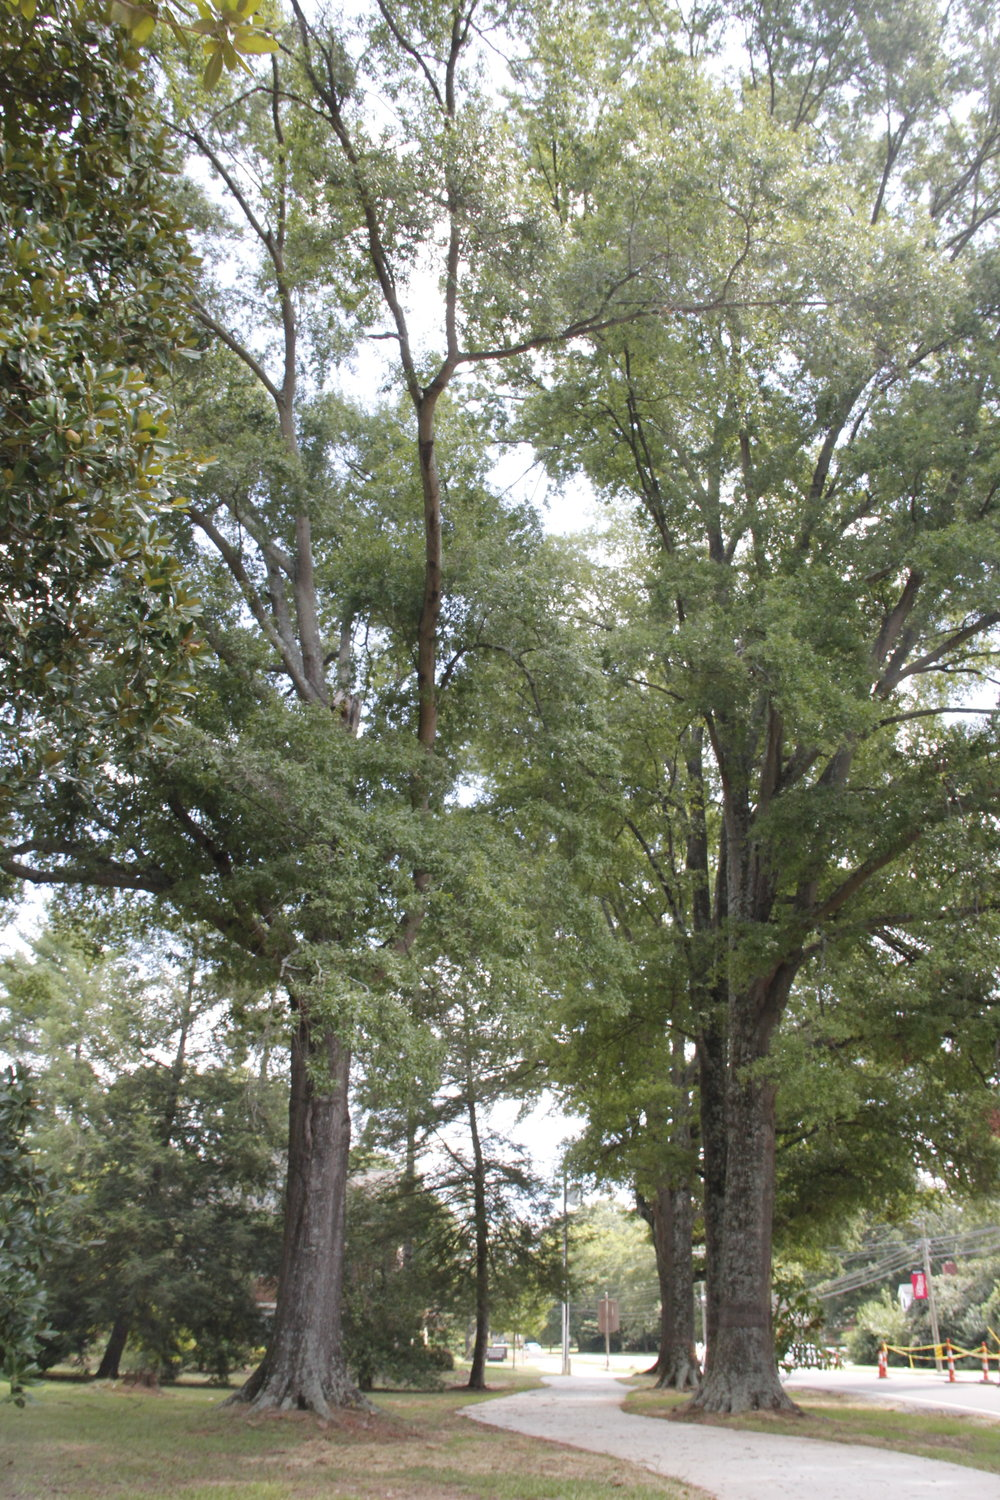 Large hardwoods are invaluable to Matthews' identity. The Appearance and Tree Board works to maintain our tree canopy.